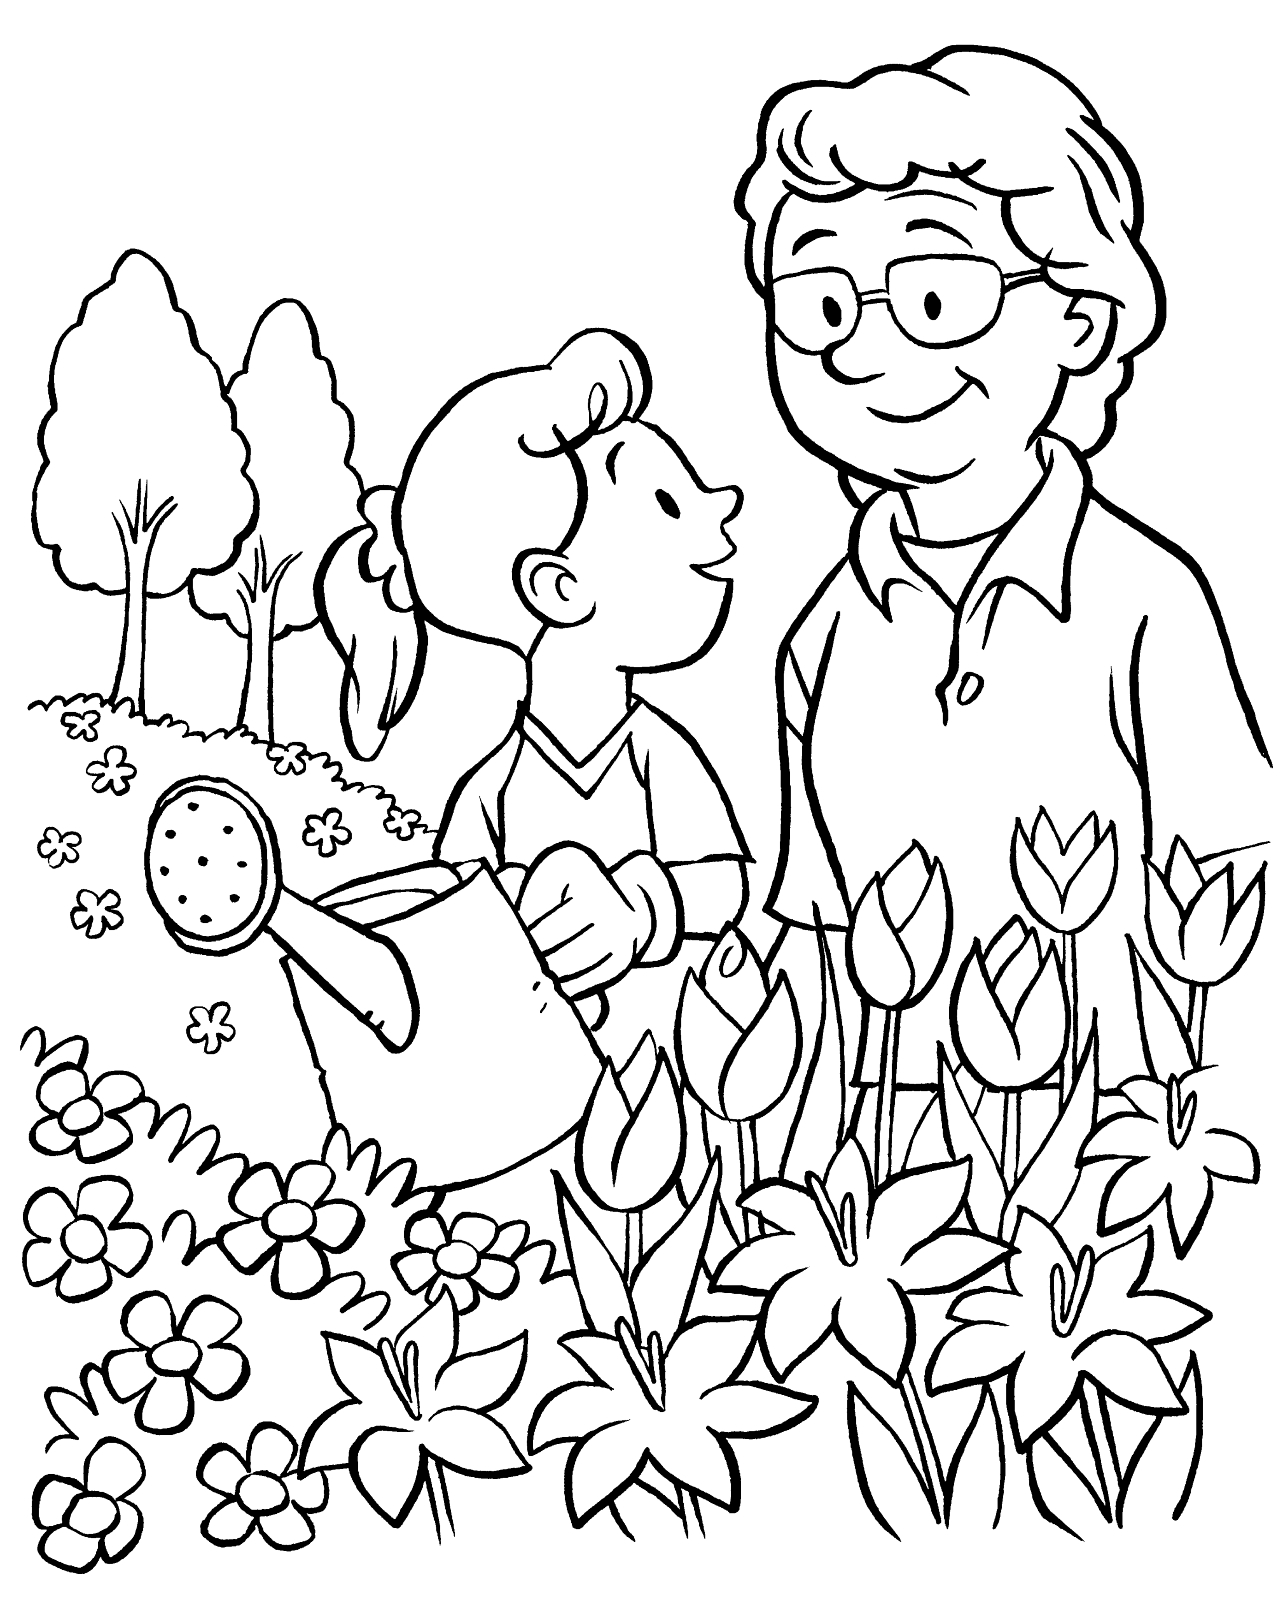 girls planting flowers coloring pages - photo#16